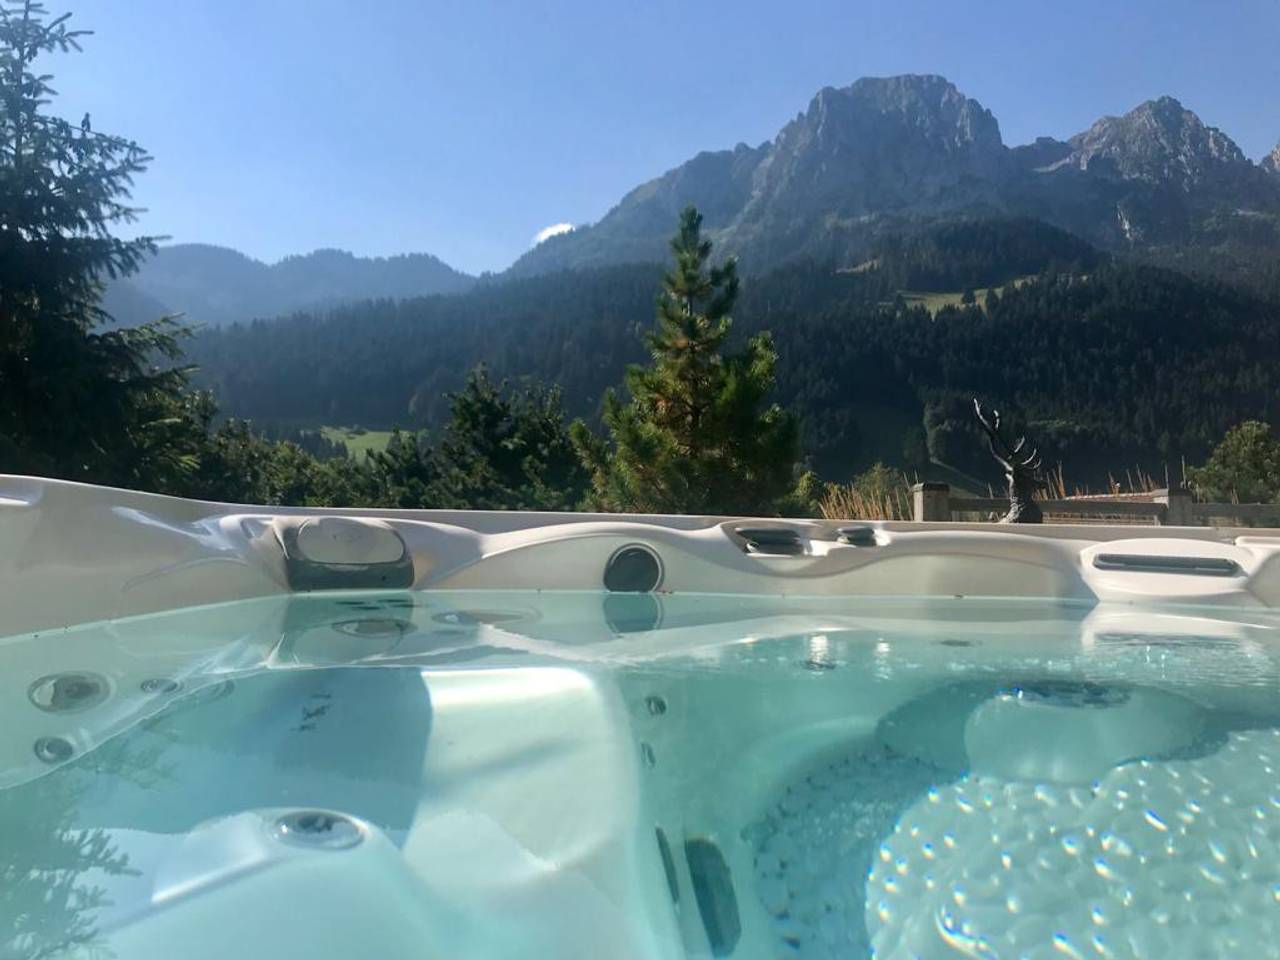 Apartment Super Luxury Serviced Apartment next to Gstaad photo 25938925